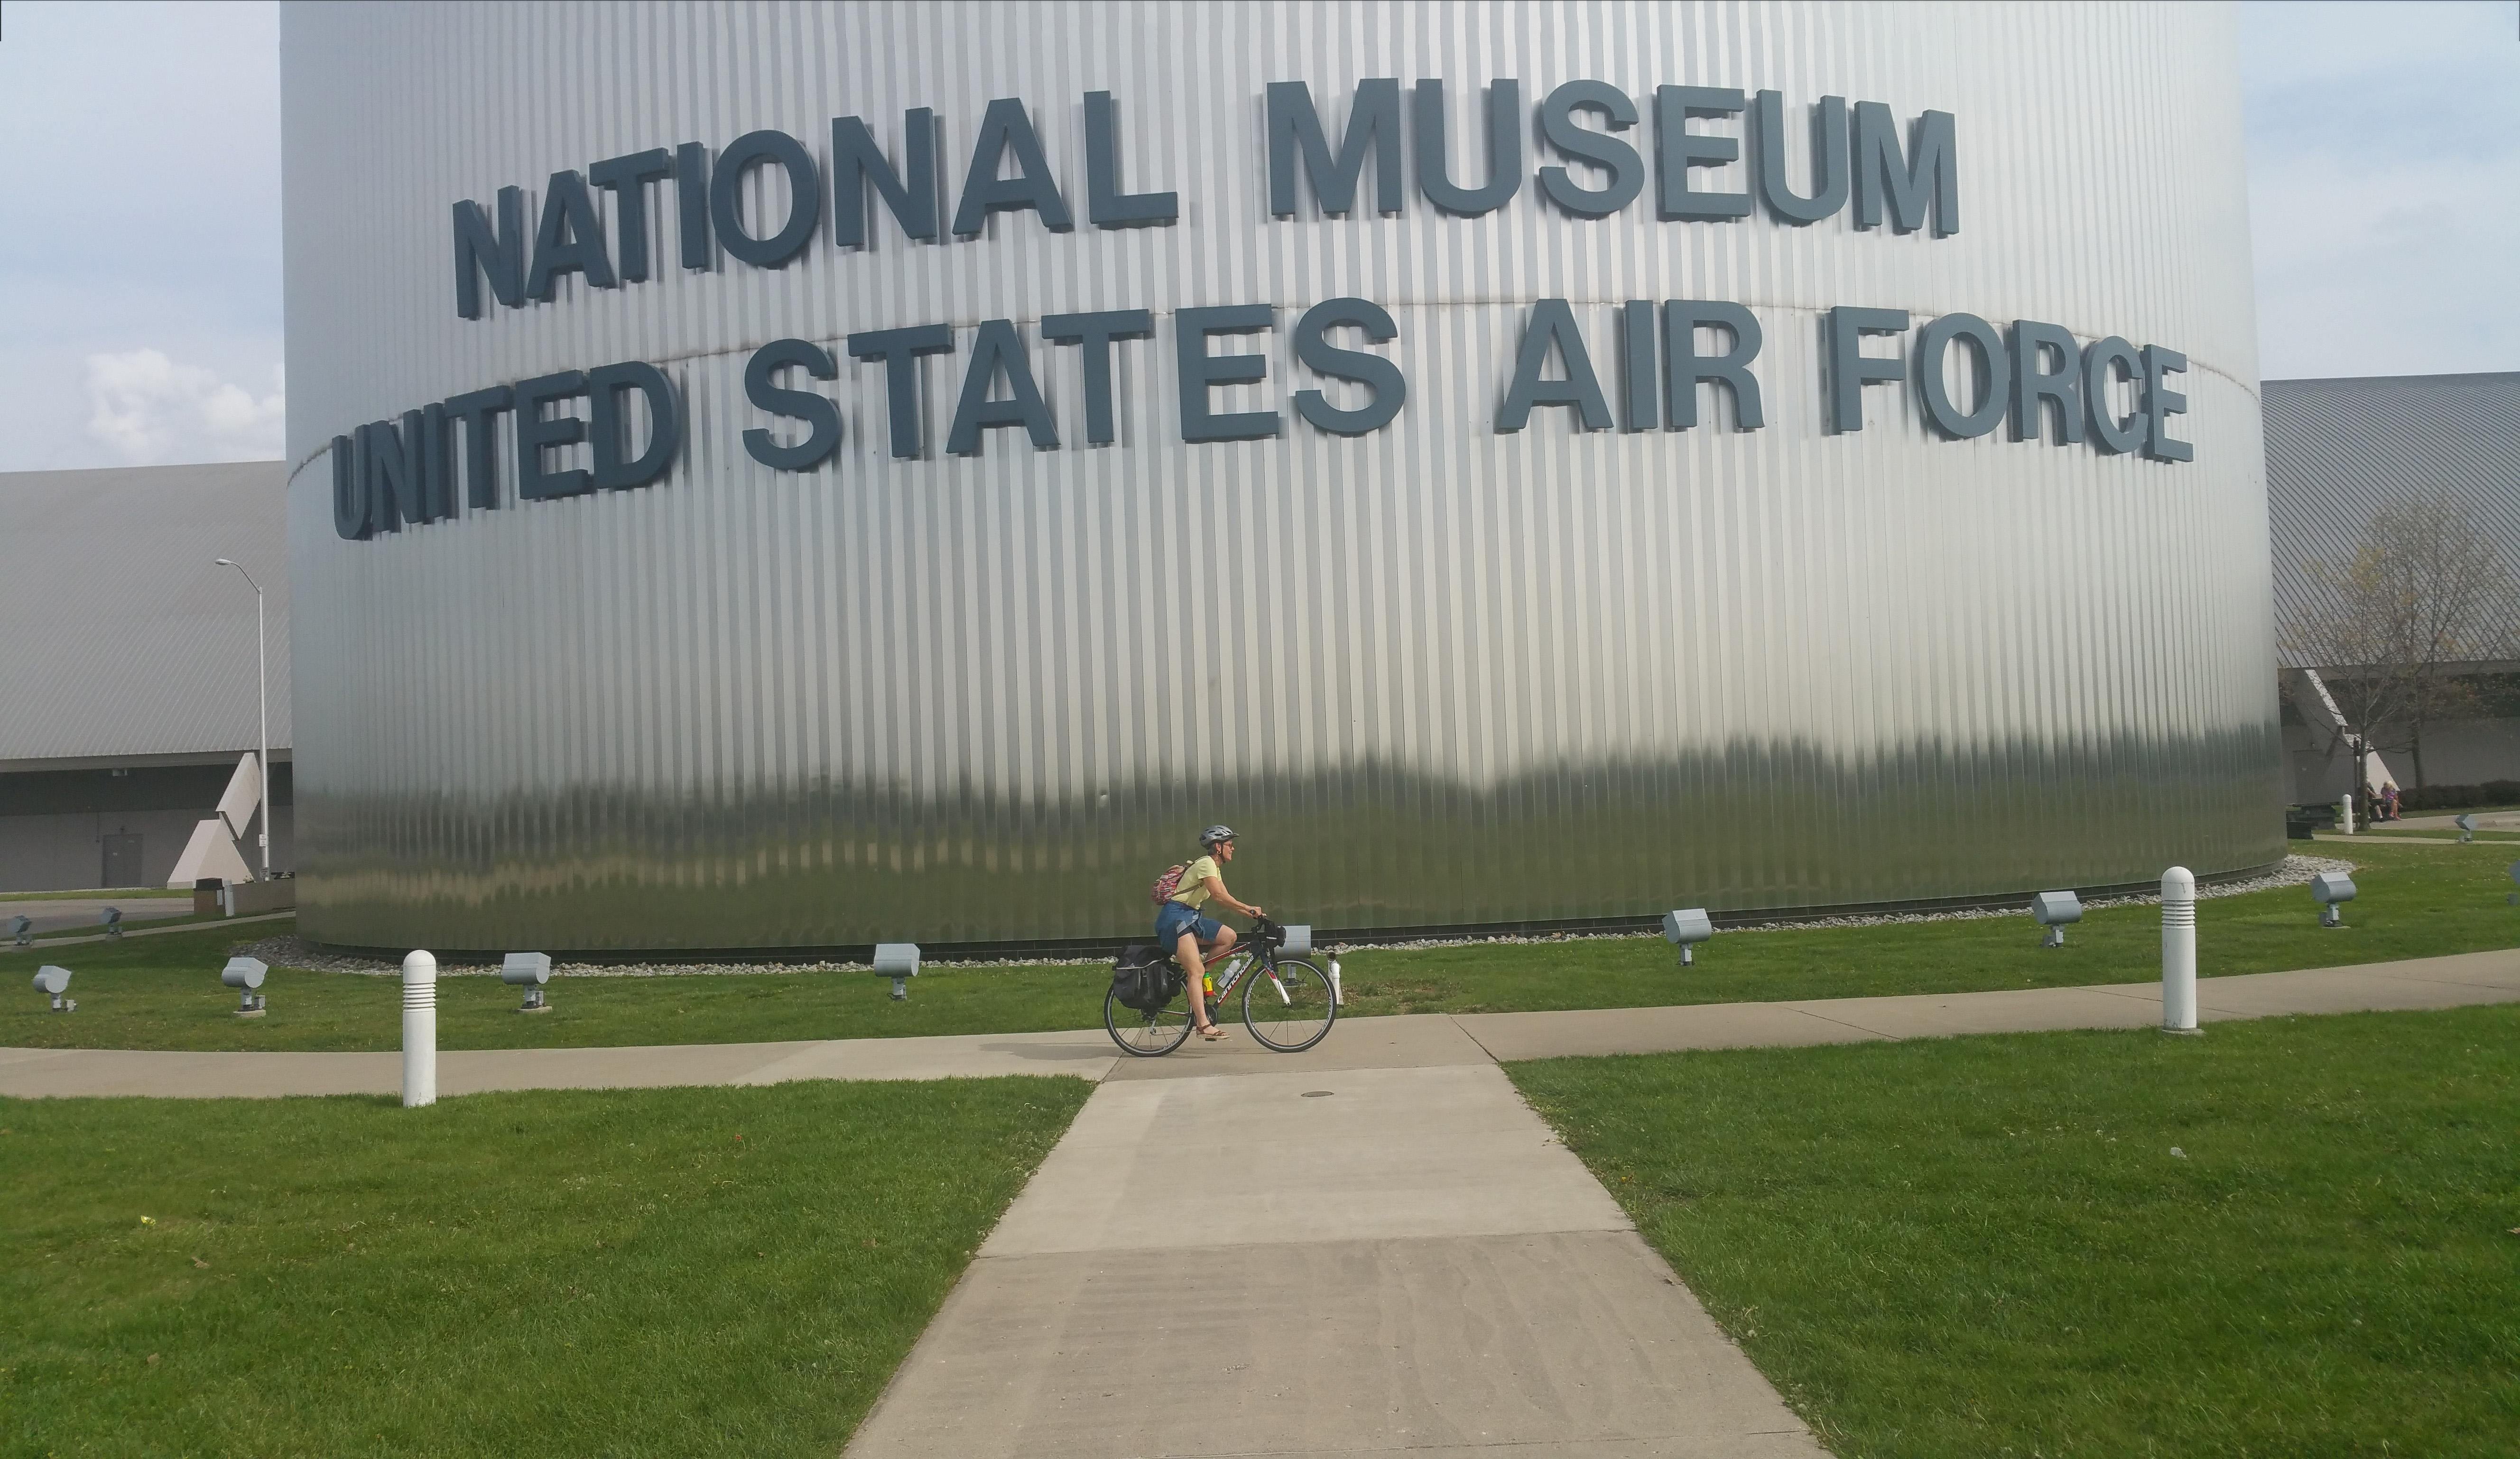 The USAF museum and its vast collection is an easy ride from the Wright brothers' bike shop.